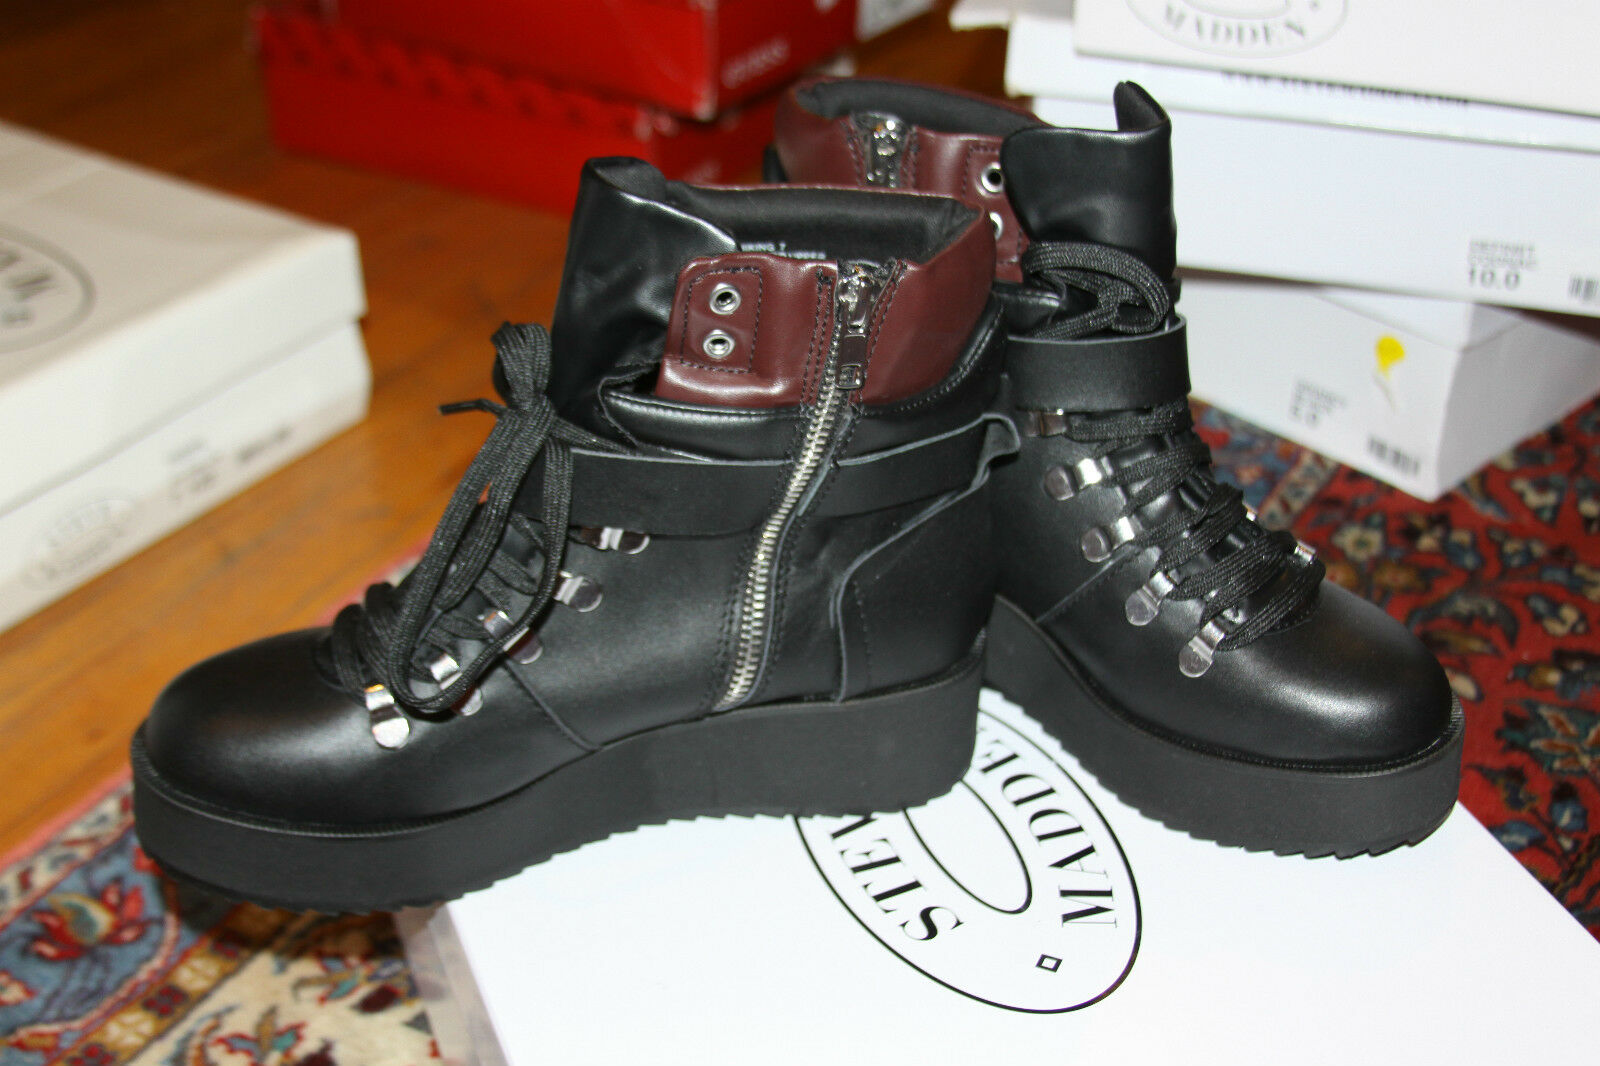 Steve Madden  Womens Hiking Boot Boot Boot Black Leather SZ 6 85156a